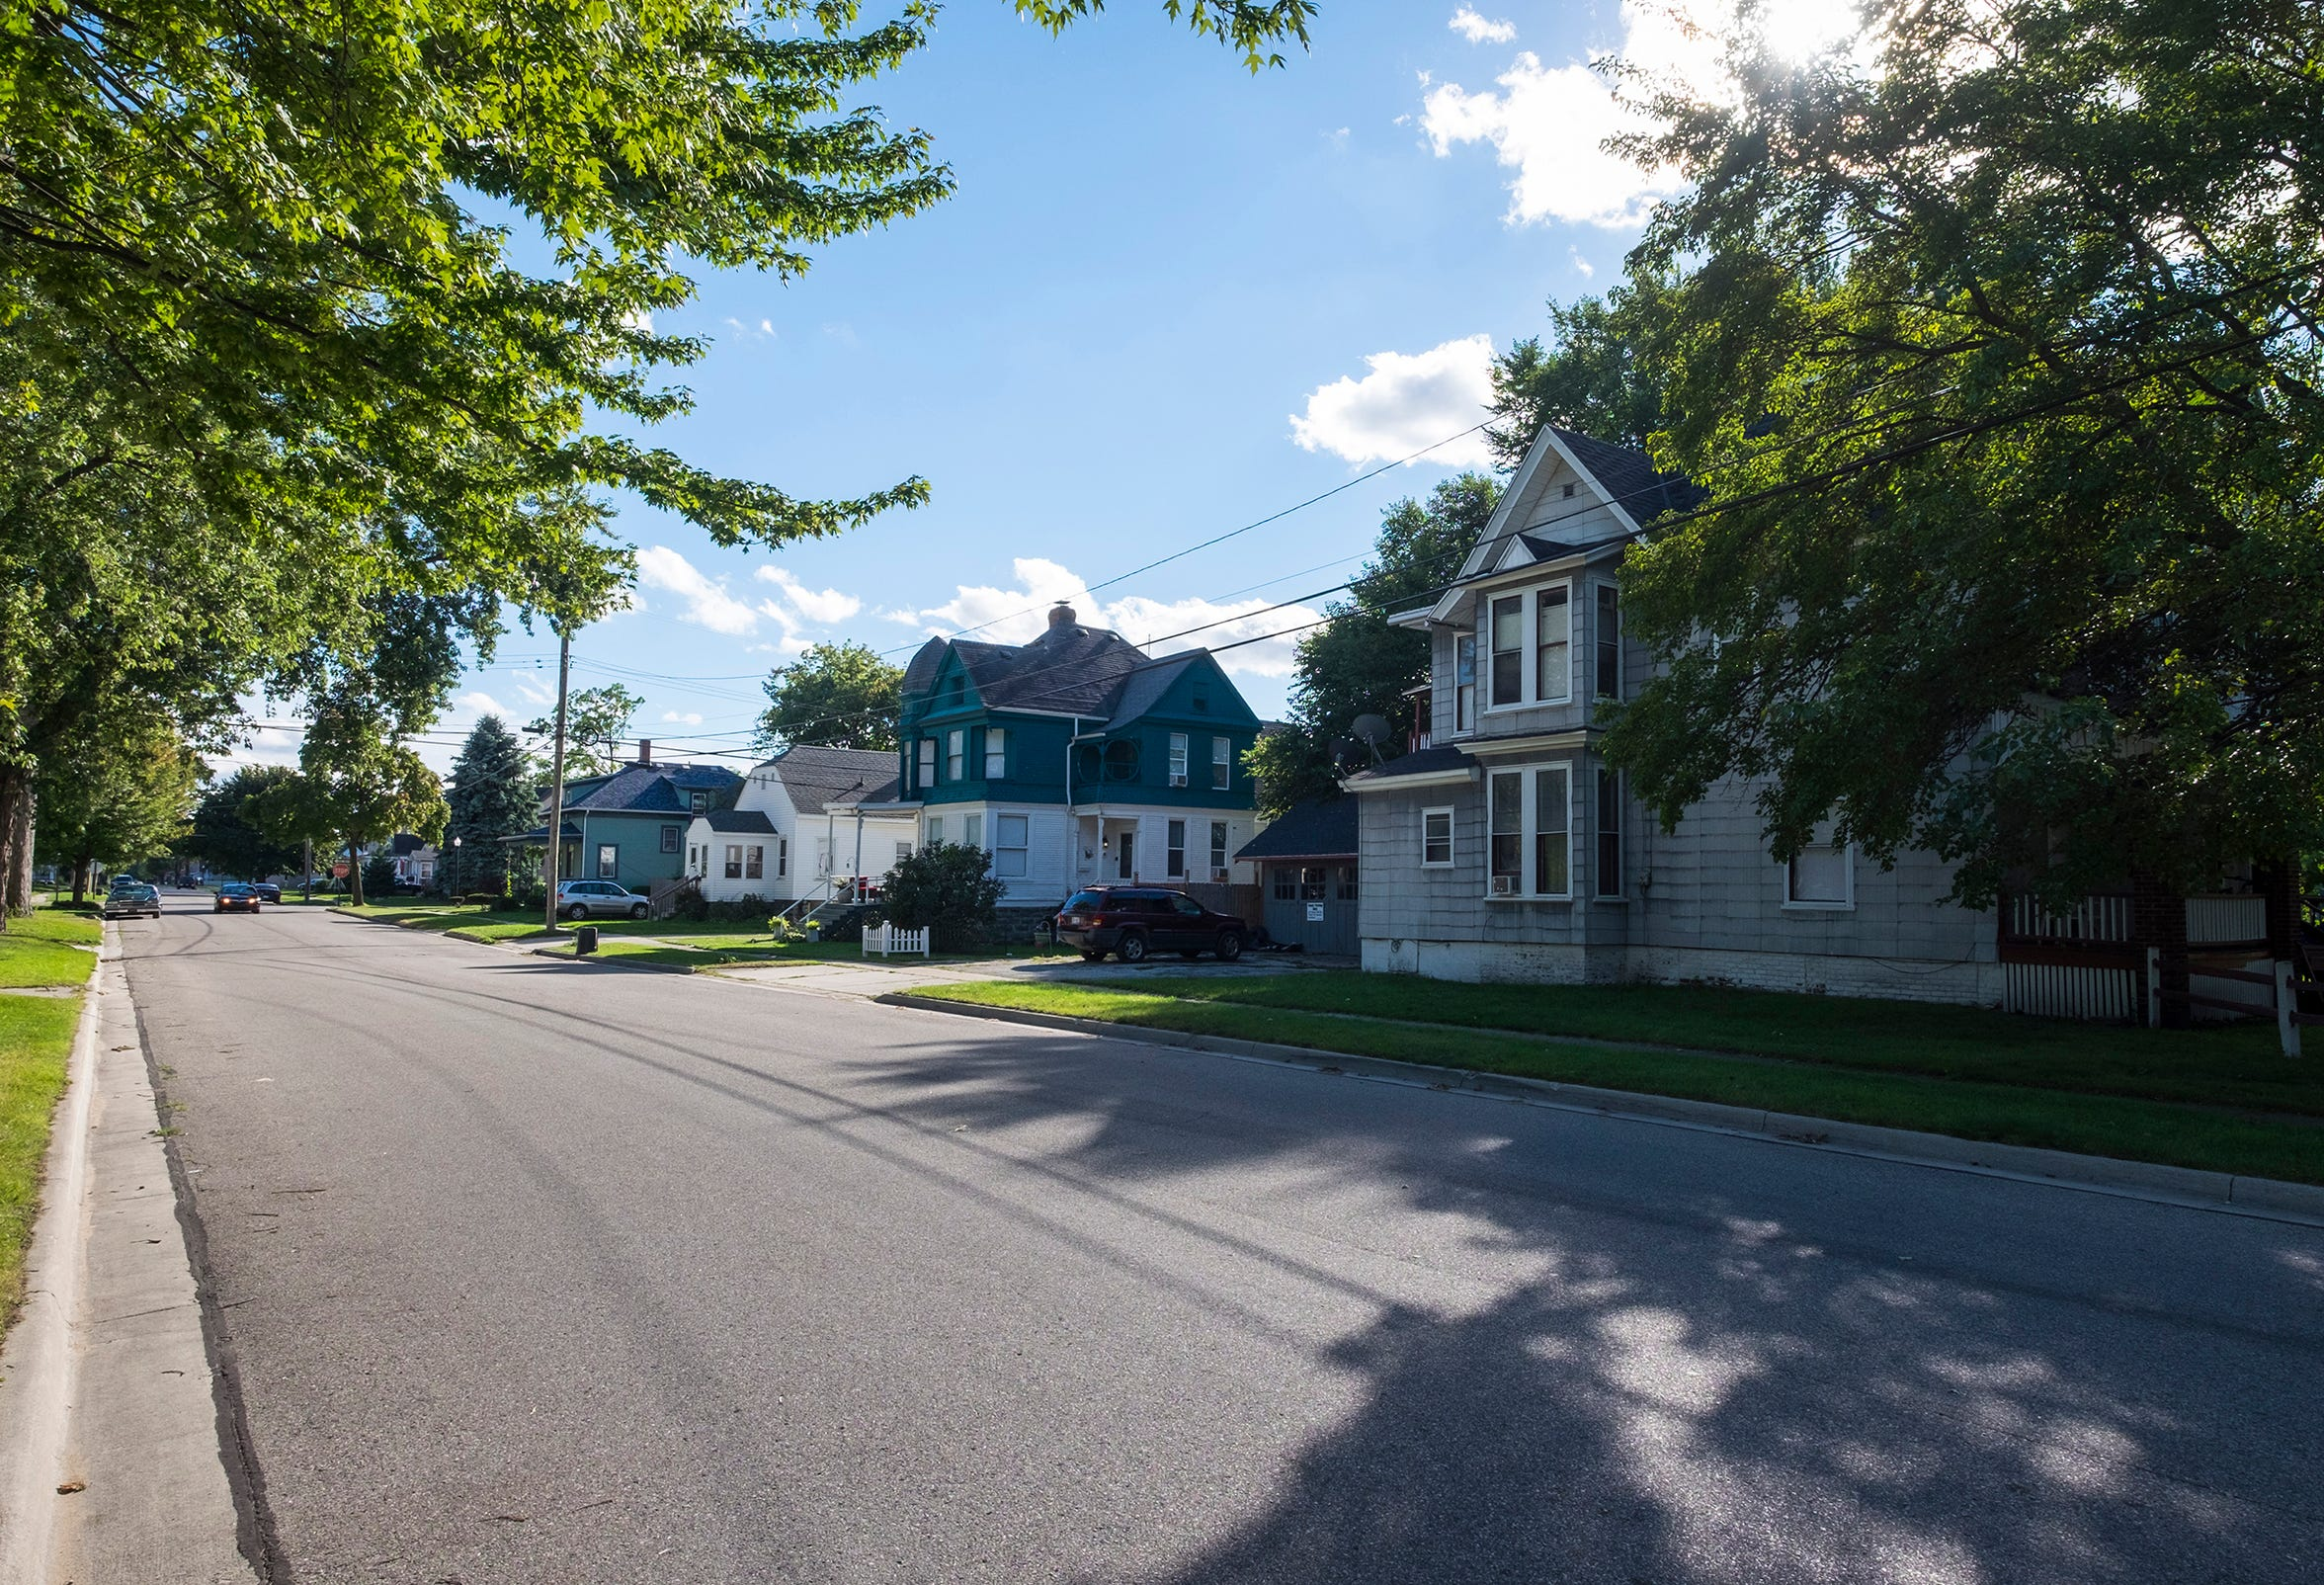 A Port Huron neighborhood south of the Black River has an average life expectancy of 66.8 years, according to data from the U.S. Small-Area Life Expectancy Estimates Project, a joint effort through the National Association for Public Health Statistics and Information Systems, the U.S. Center for Disease Control and Prevention's National Center for Health Statistics and the Robert Wood Johnson Foundation.